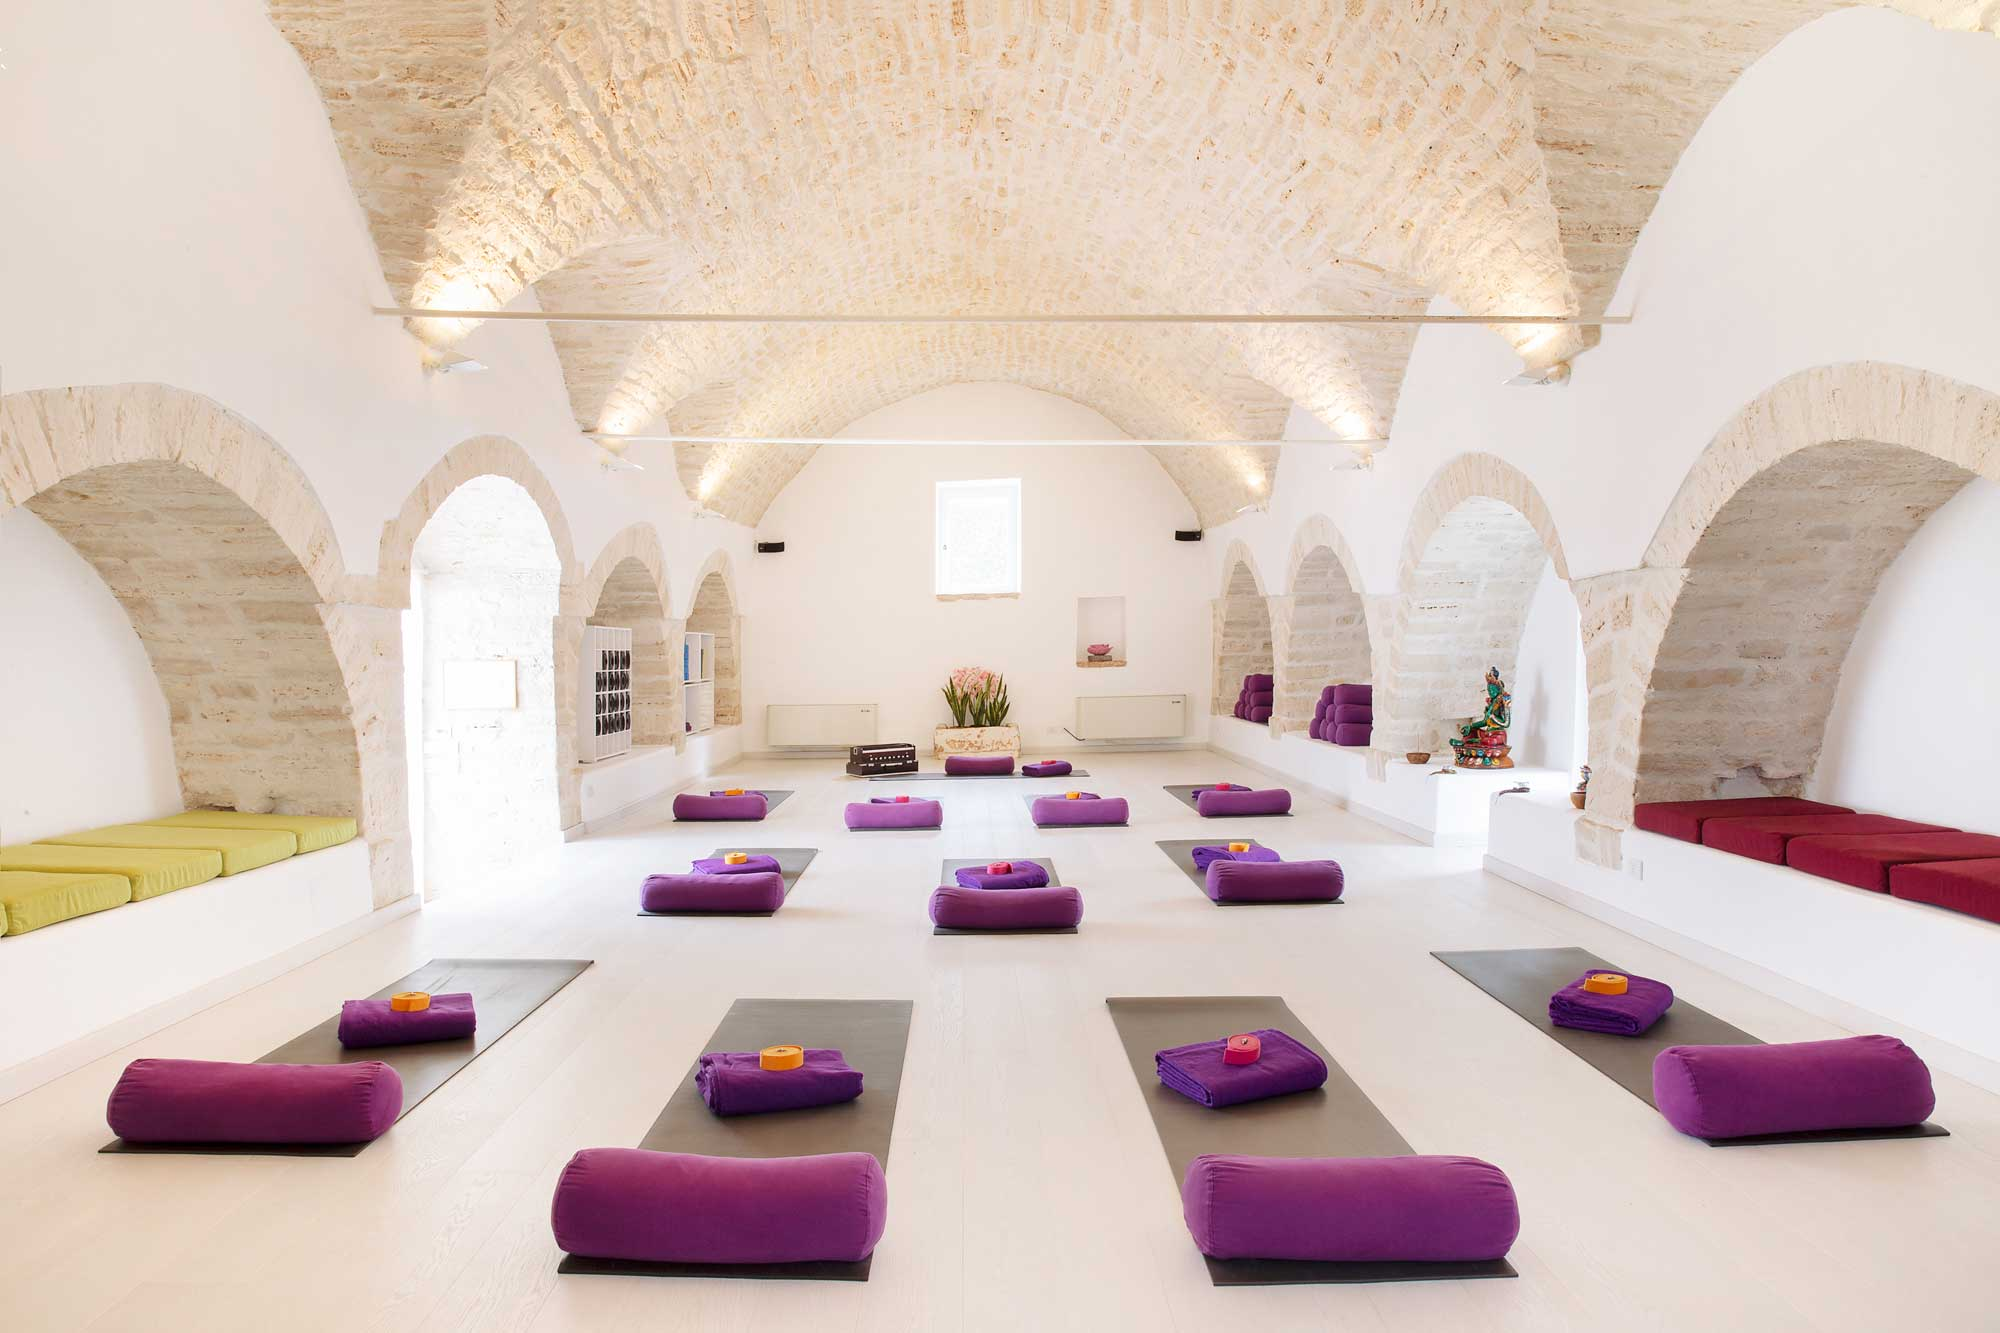 Awaken the Wild & Wise Woman Within,  Connect to your Wild, instinctual nature, remove the illusion, call back your power.  Puglia, Italy. Sat 26th Oct to Sat 2nd Nov   6 spaces left